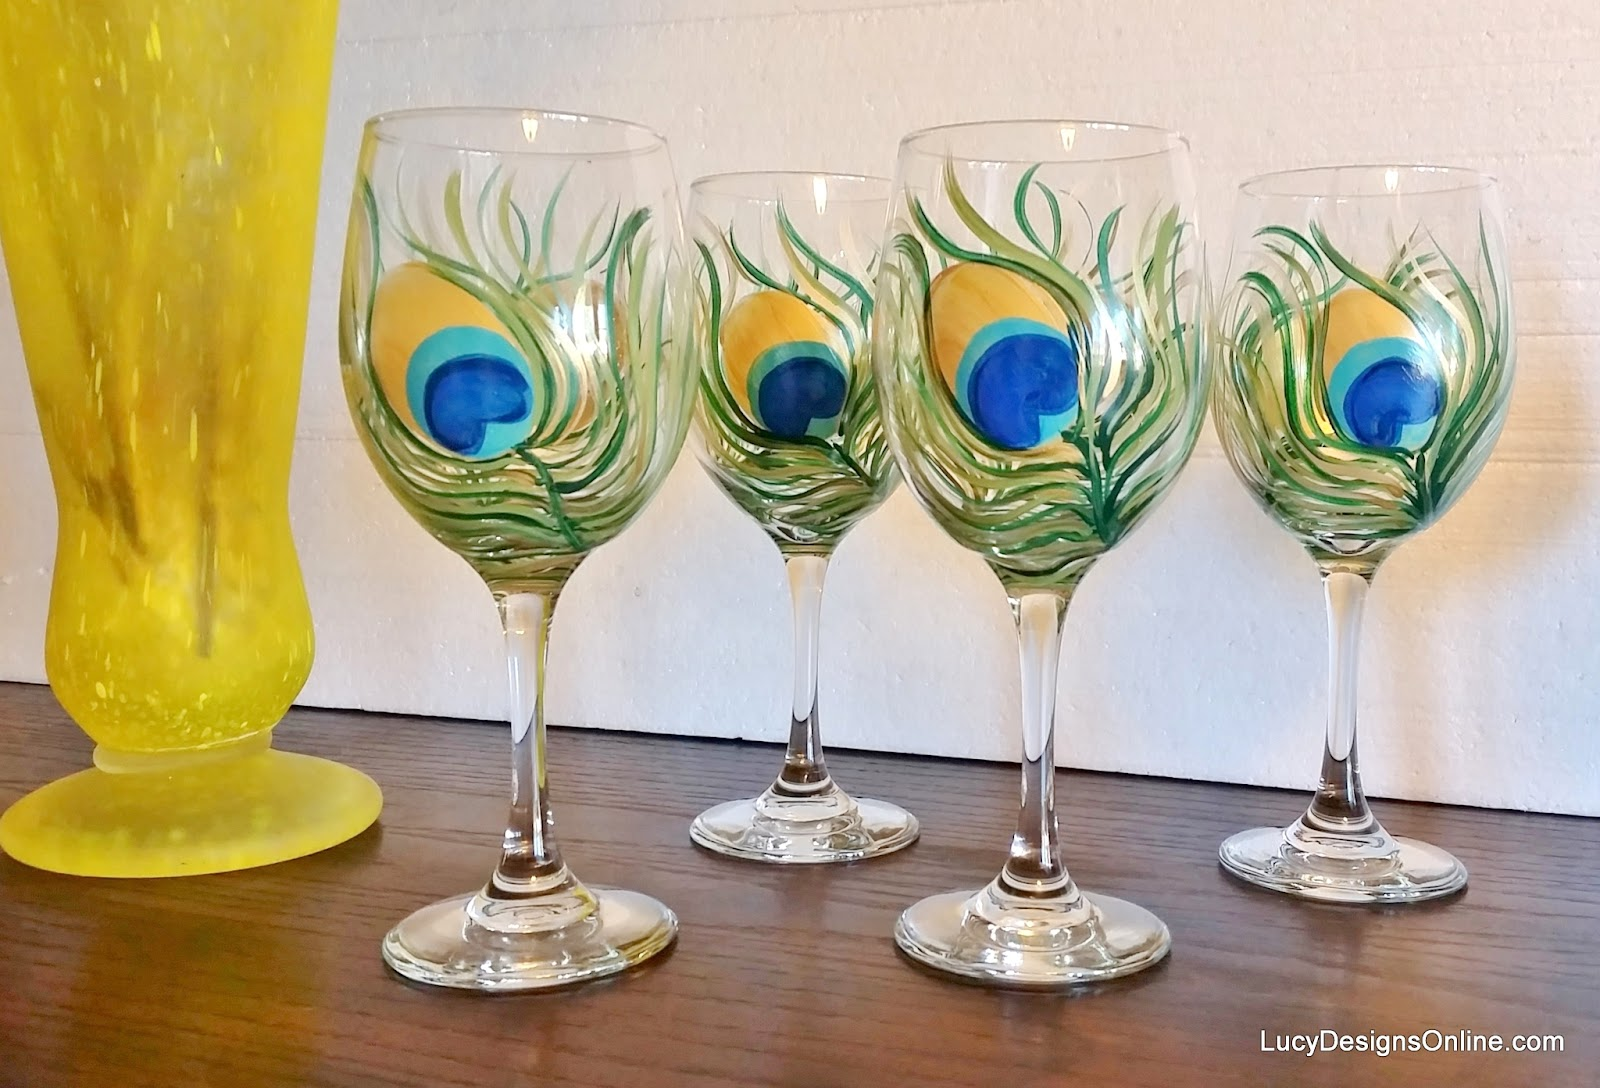 Diy hand painted wine glasses with peacock feather design Images of painted wine glasses